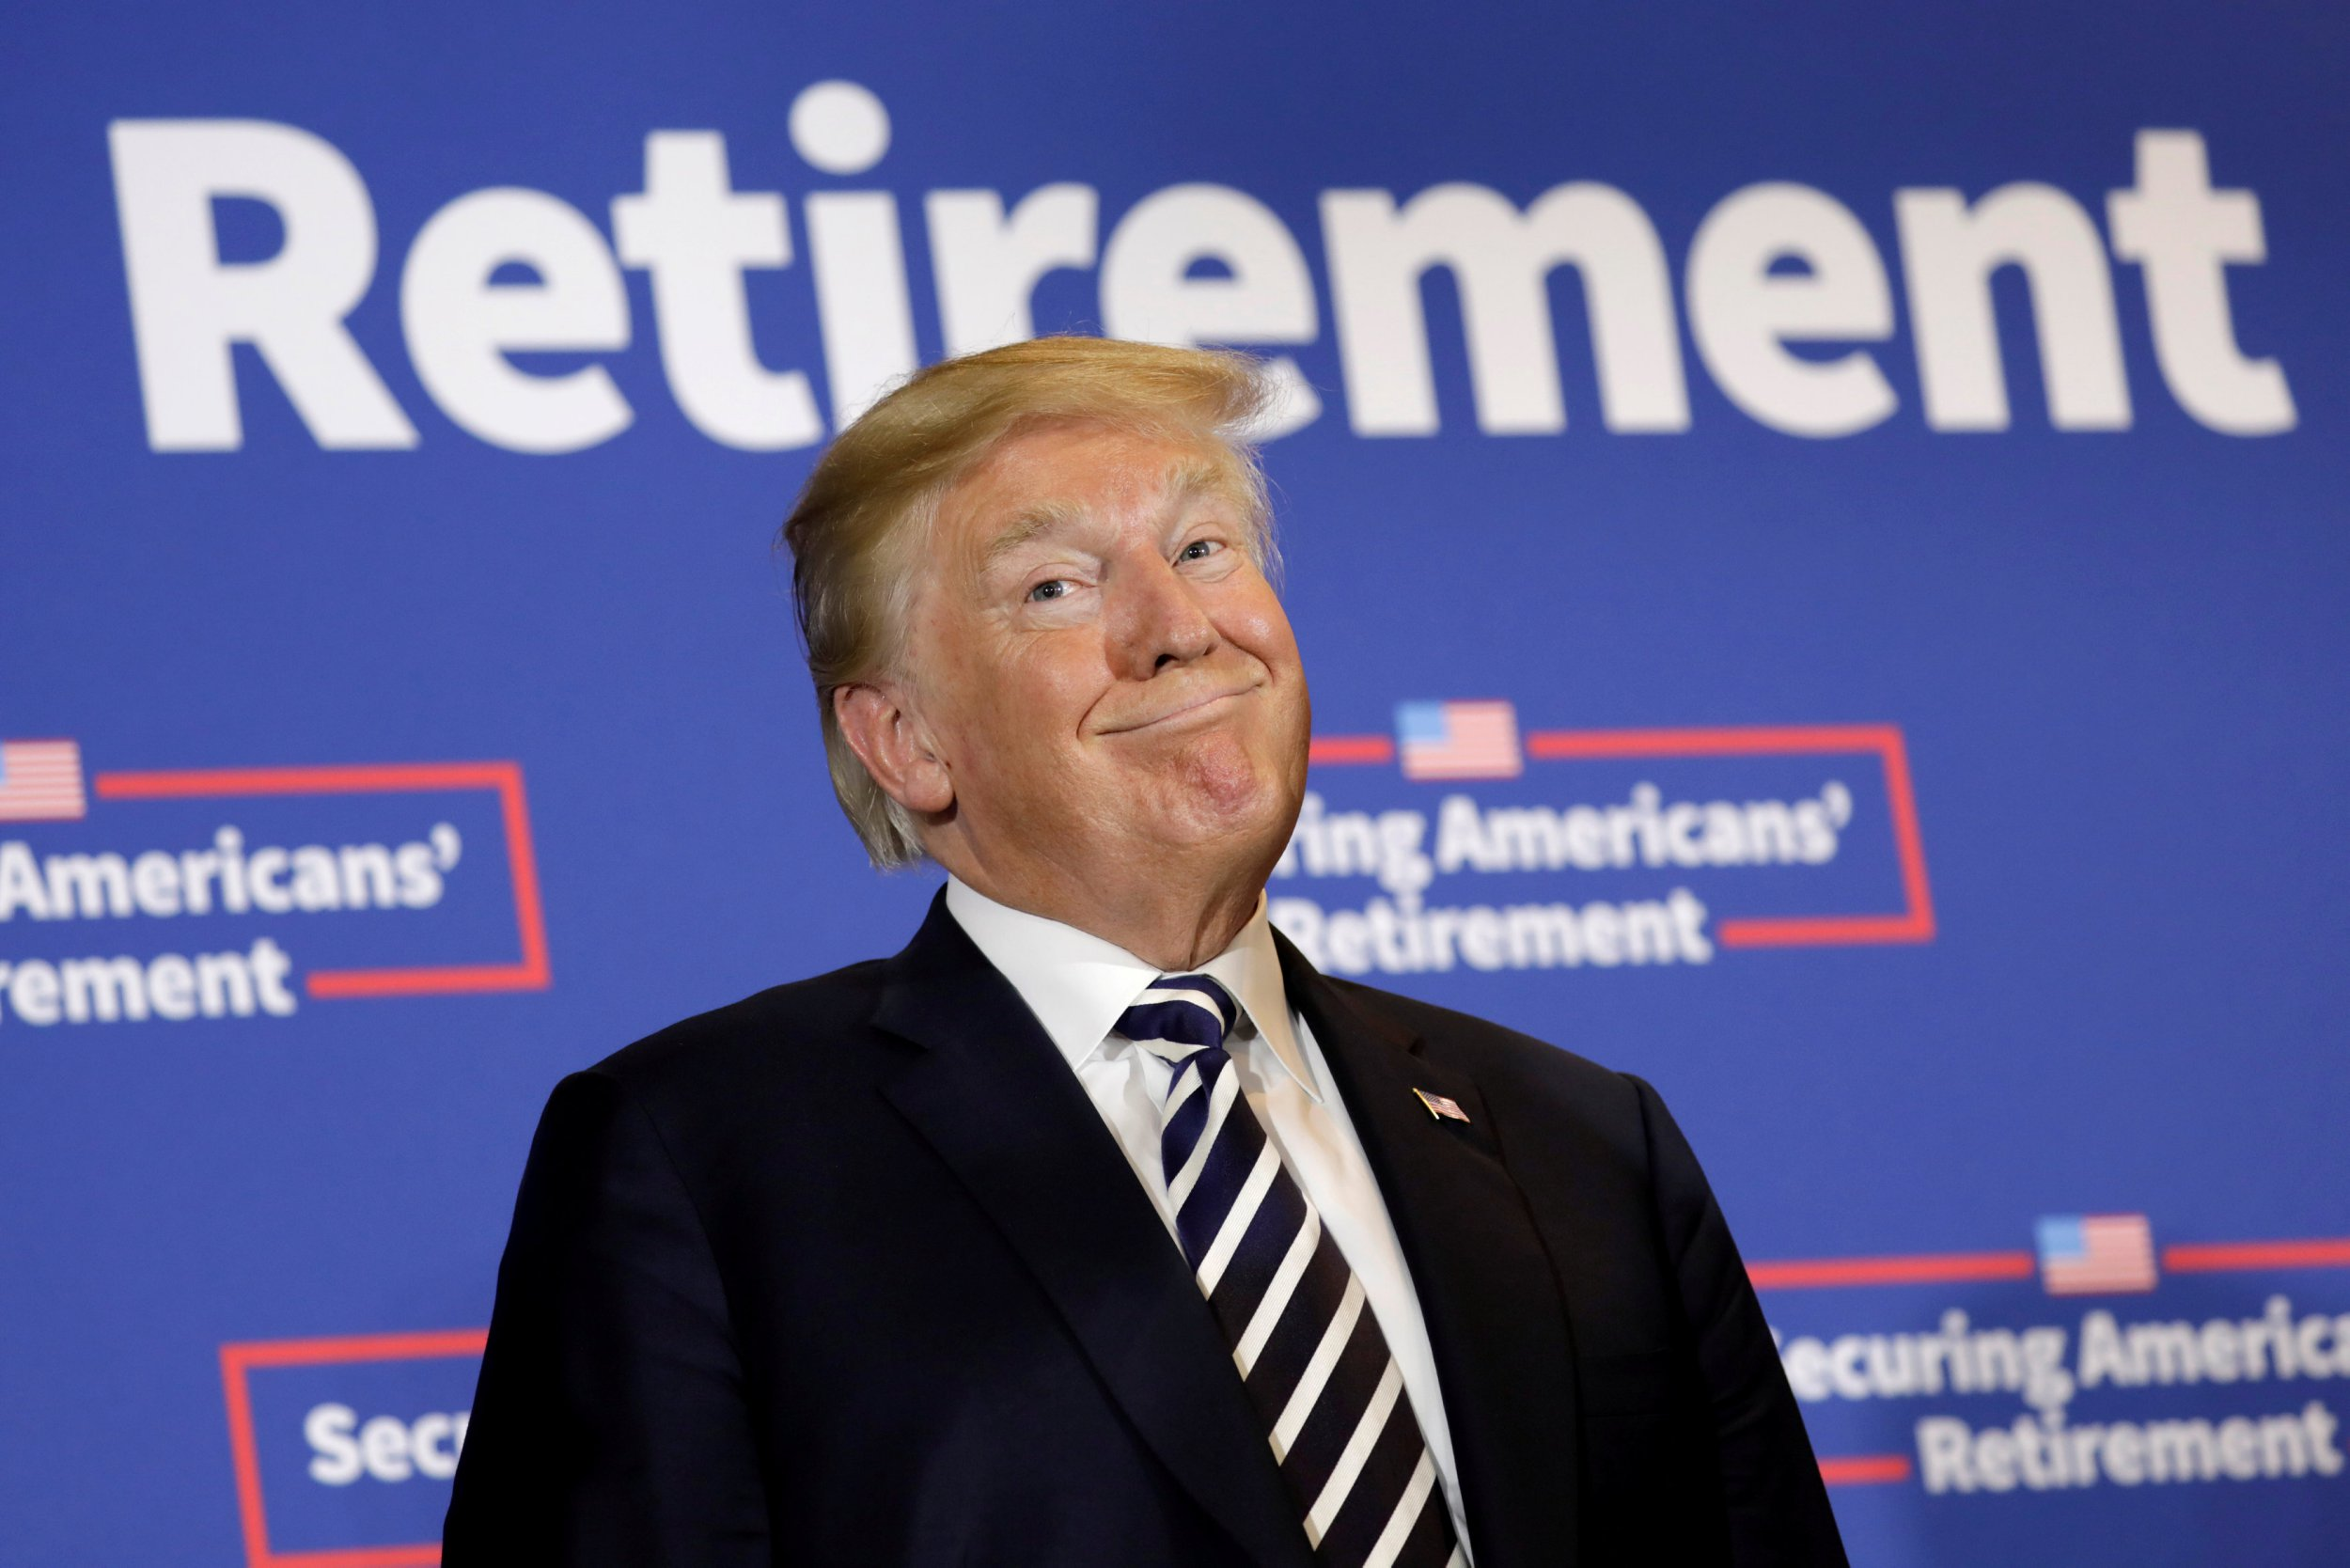 U.S. President Donald Trump smiles before signing an executive order on strengthening retirement security in America at Harris Conference Center in Charlotte, NC, U.S., August 31, 2018. REUTERS/Yuri Gripas TPX IMAGES OF THE DAY